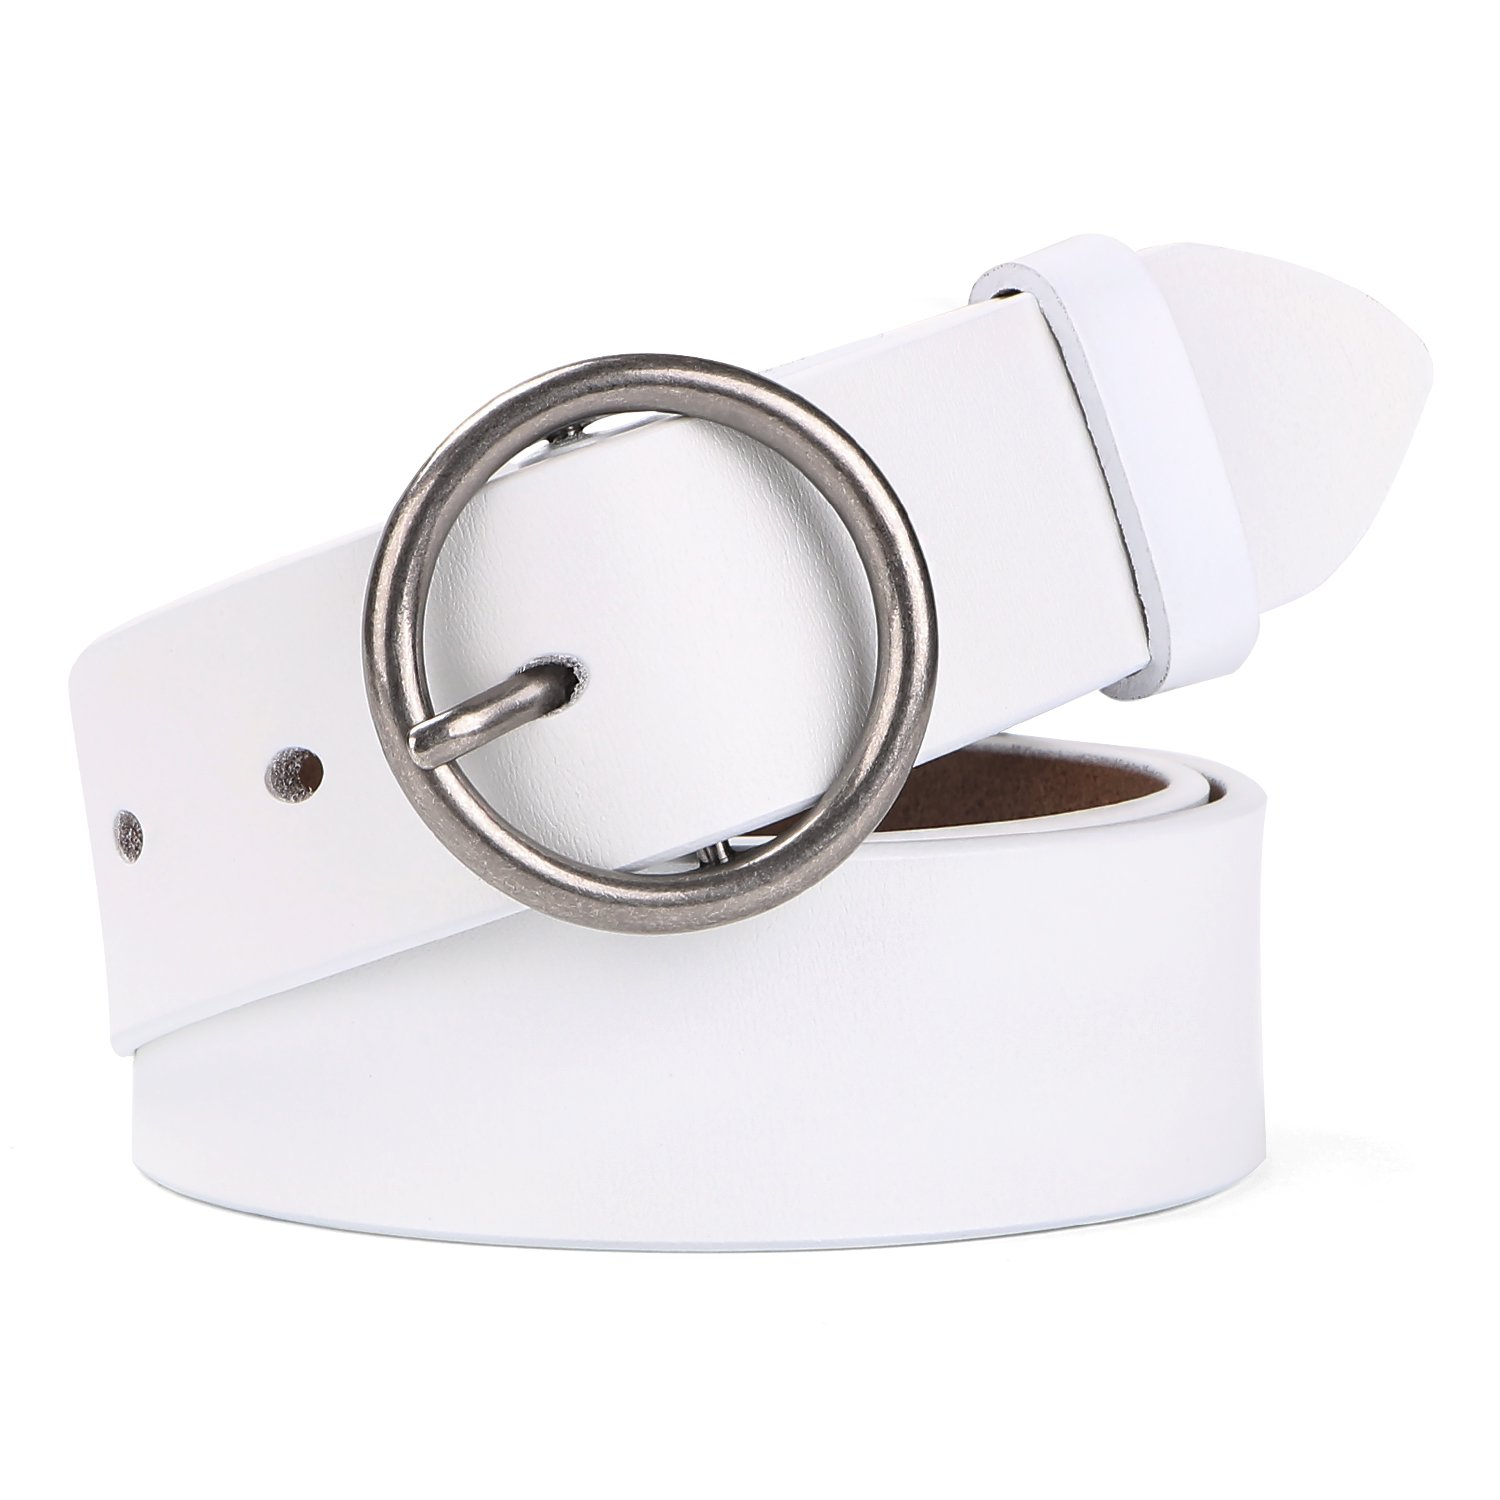 WERFORU Women Casual Dress Belt Genuine Leather Belt with Round Buckle (Suit Pant Size 24''-28'', Style1-05-White)